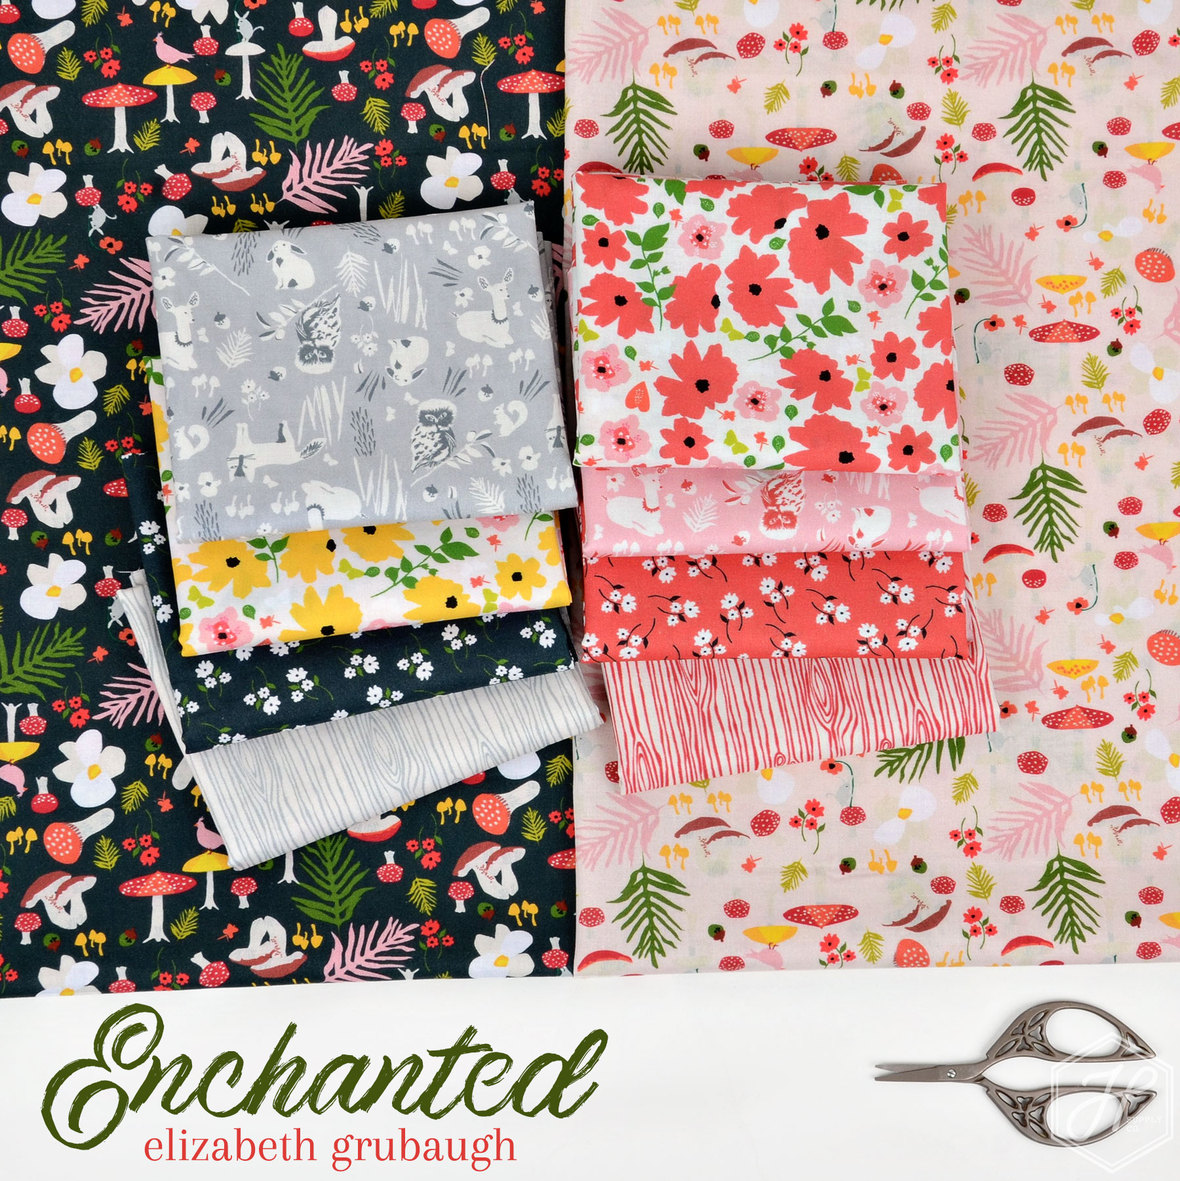 Enchanted-fabric-Elizabeth-Grubaugh-for-Blend-at-Hawthorne-Supply-Co